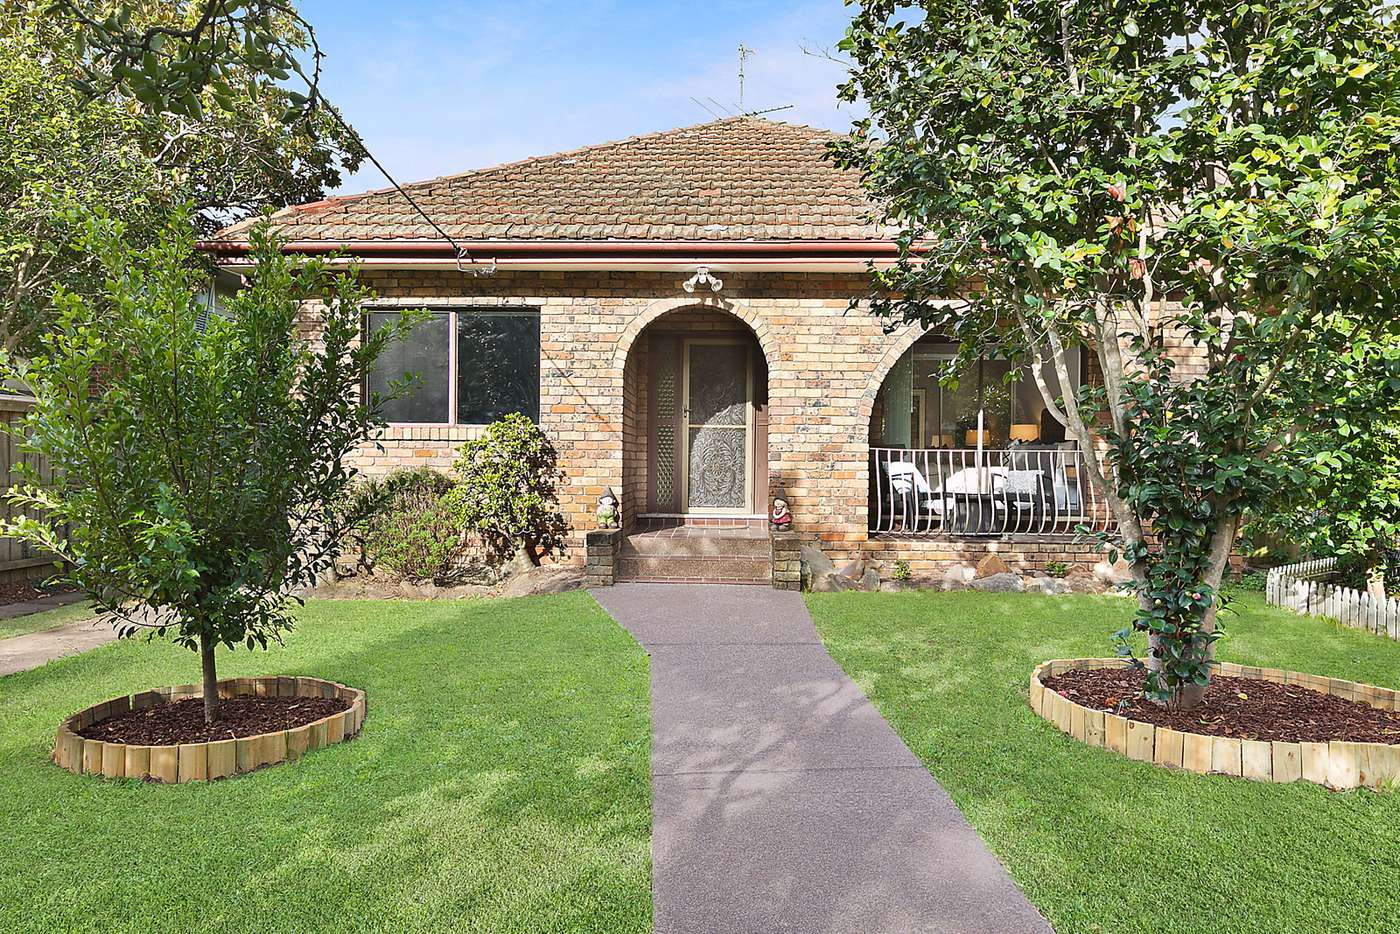 Main view of Homely house listing, 69 Sydney Street, Willoughby NSW 2068